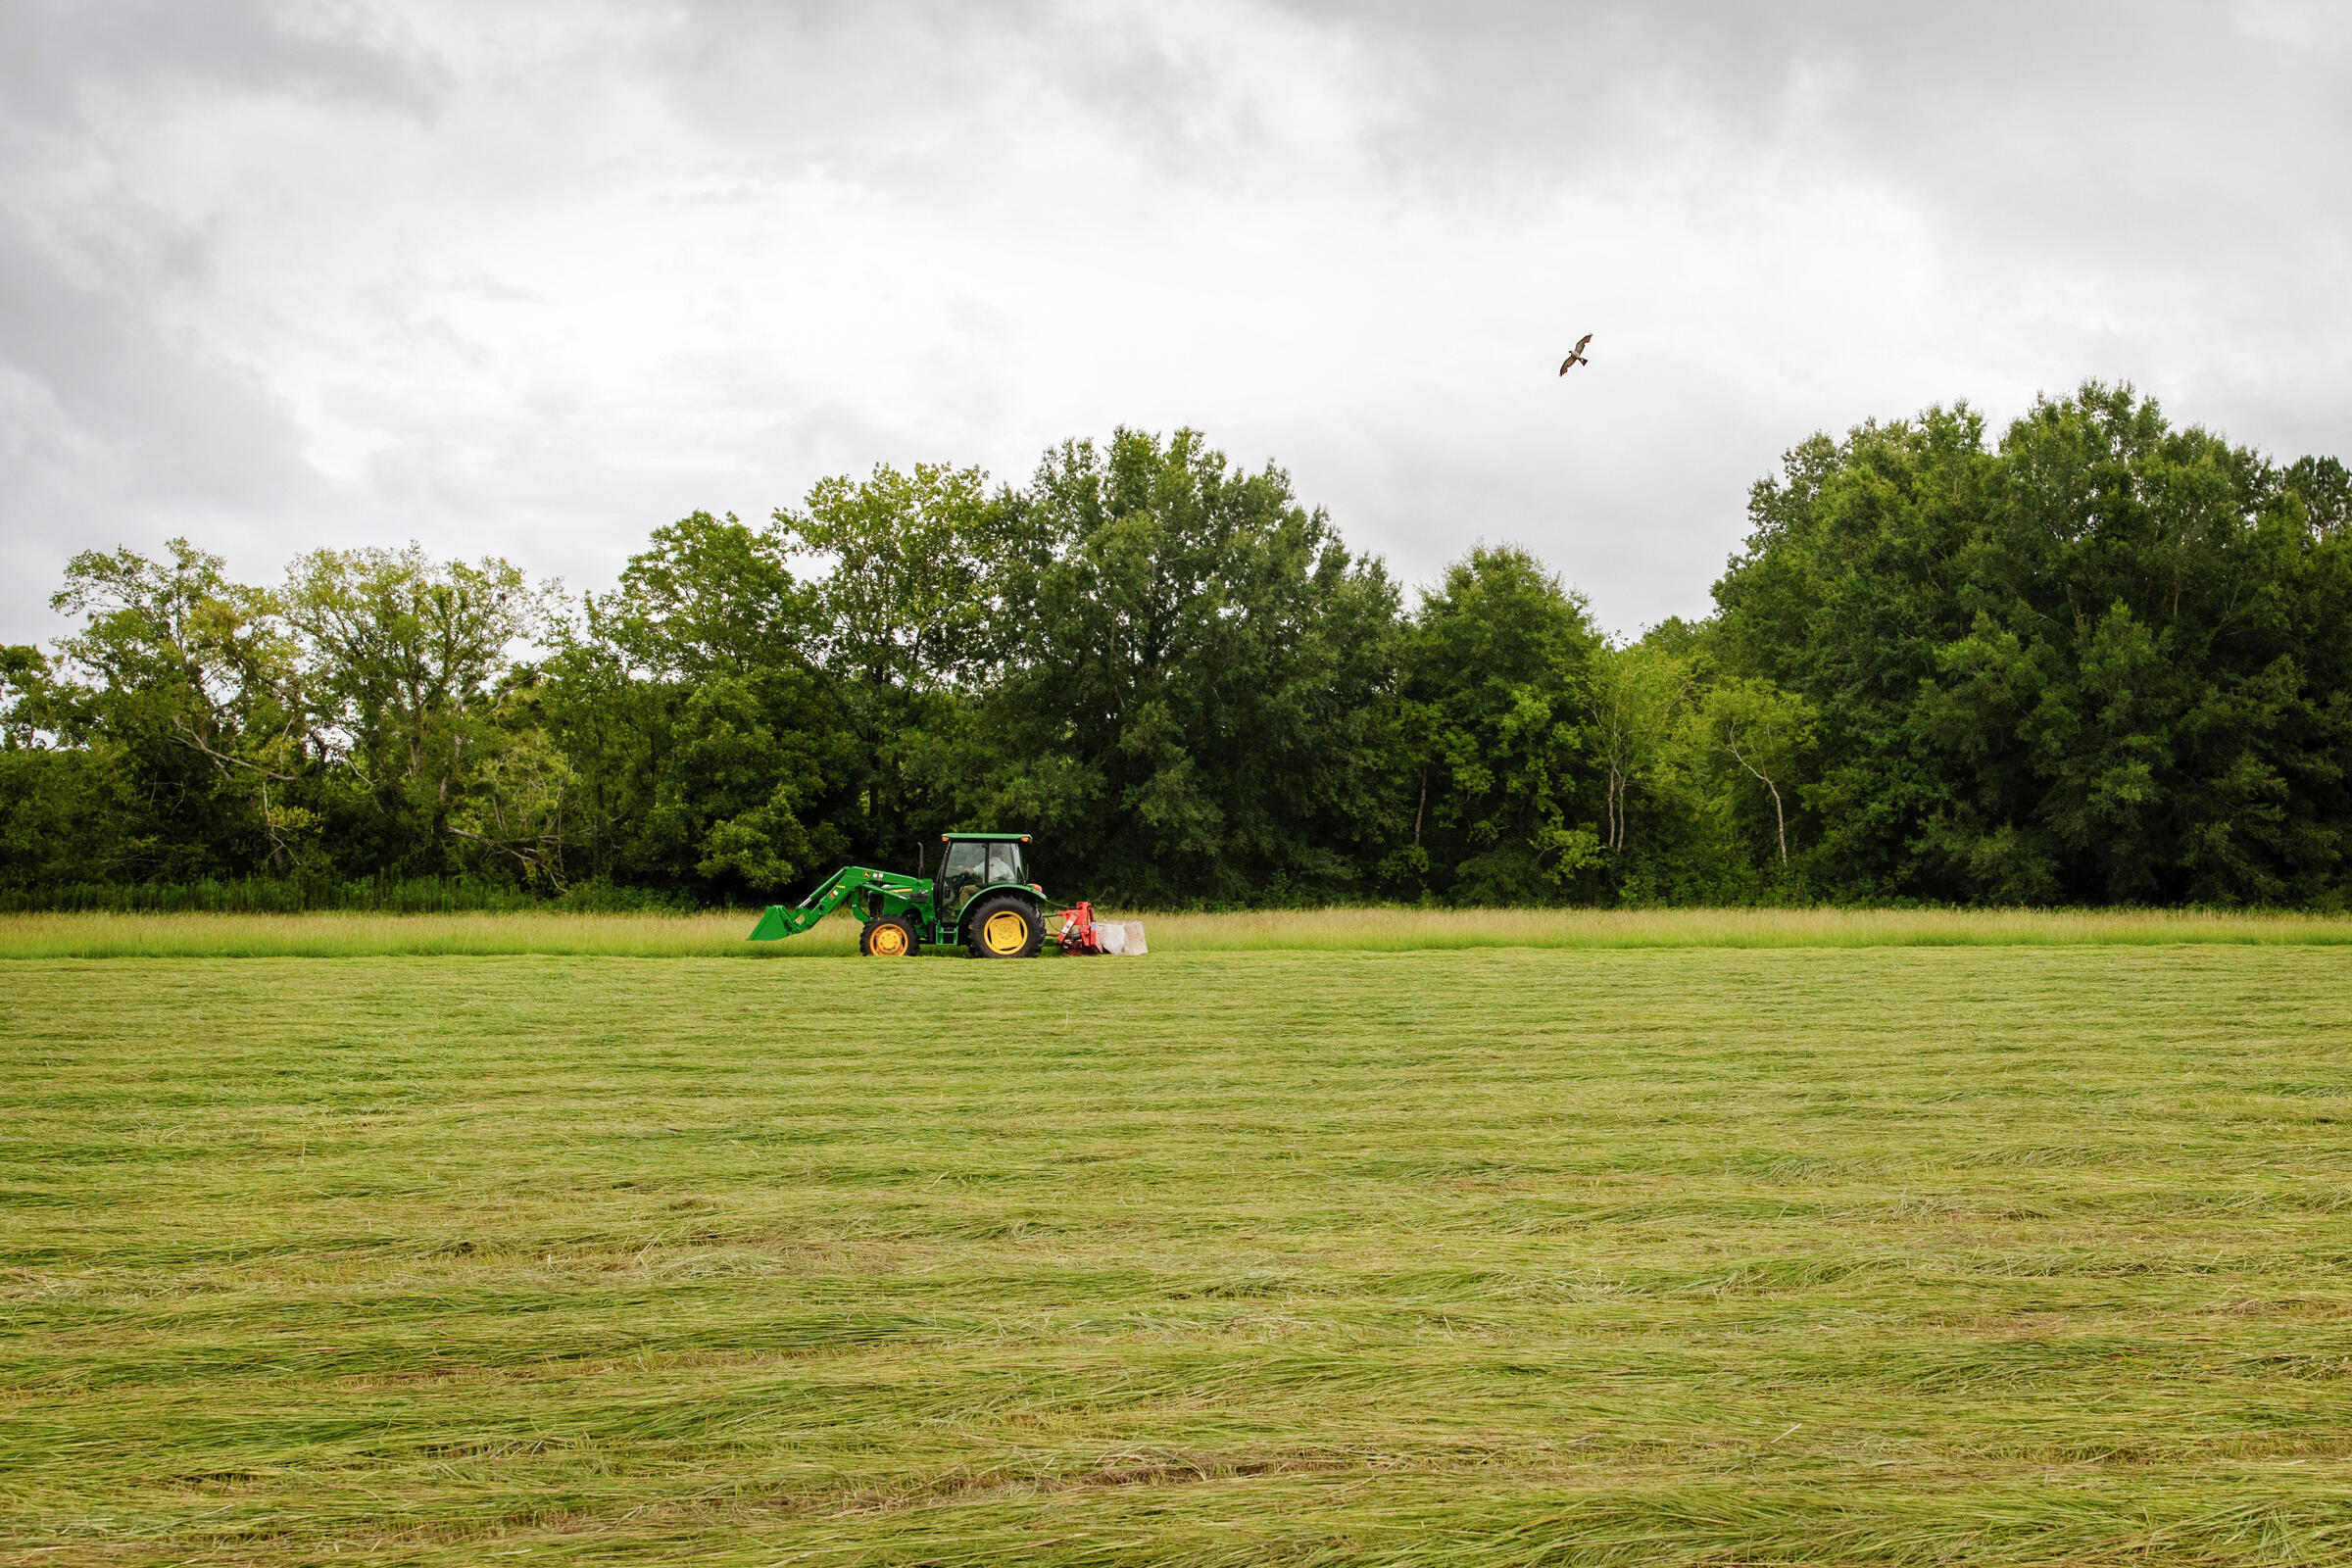 A green tractor pulling a mower cuts hay in a lush, green field. Above the green trees in the background, against a gray sky, a Mississippi Kite hovers over the tractor.